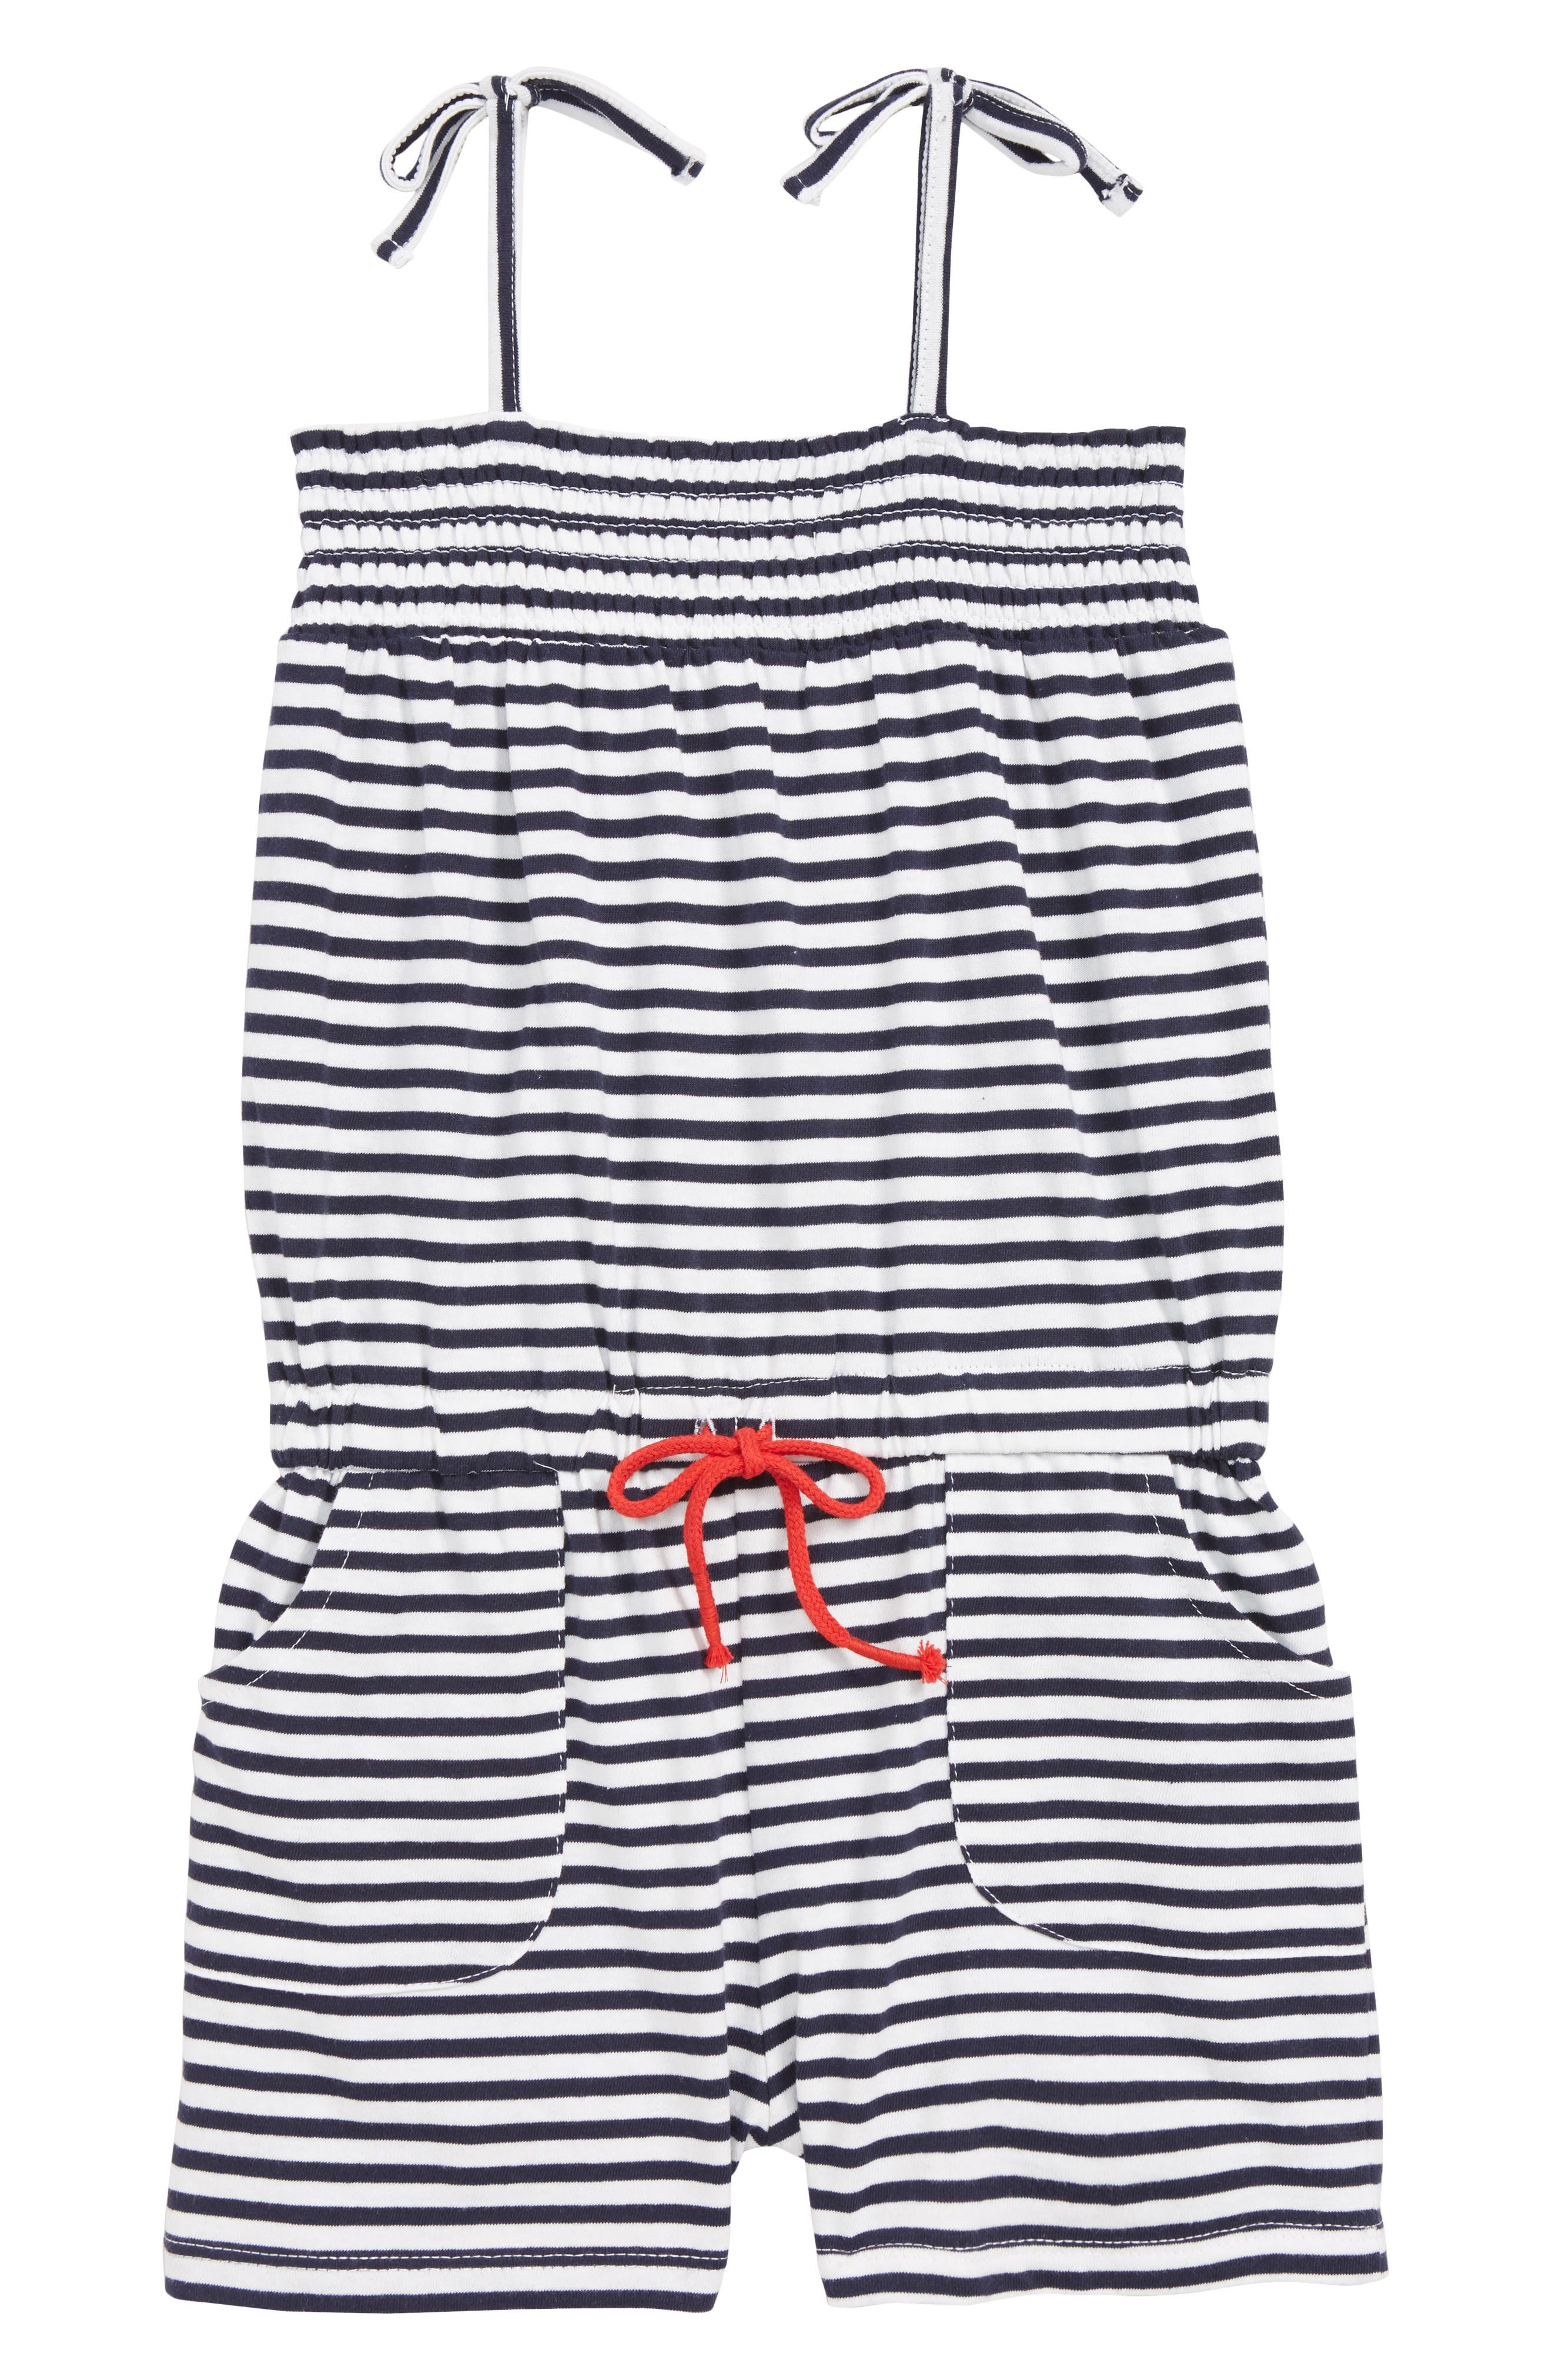 Toddler Girls Seed Heritage Stripe Jersey Romper Size 3  Blue